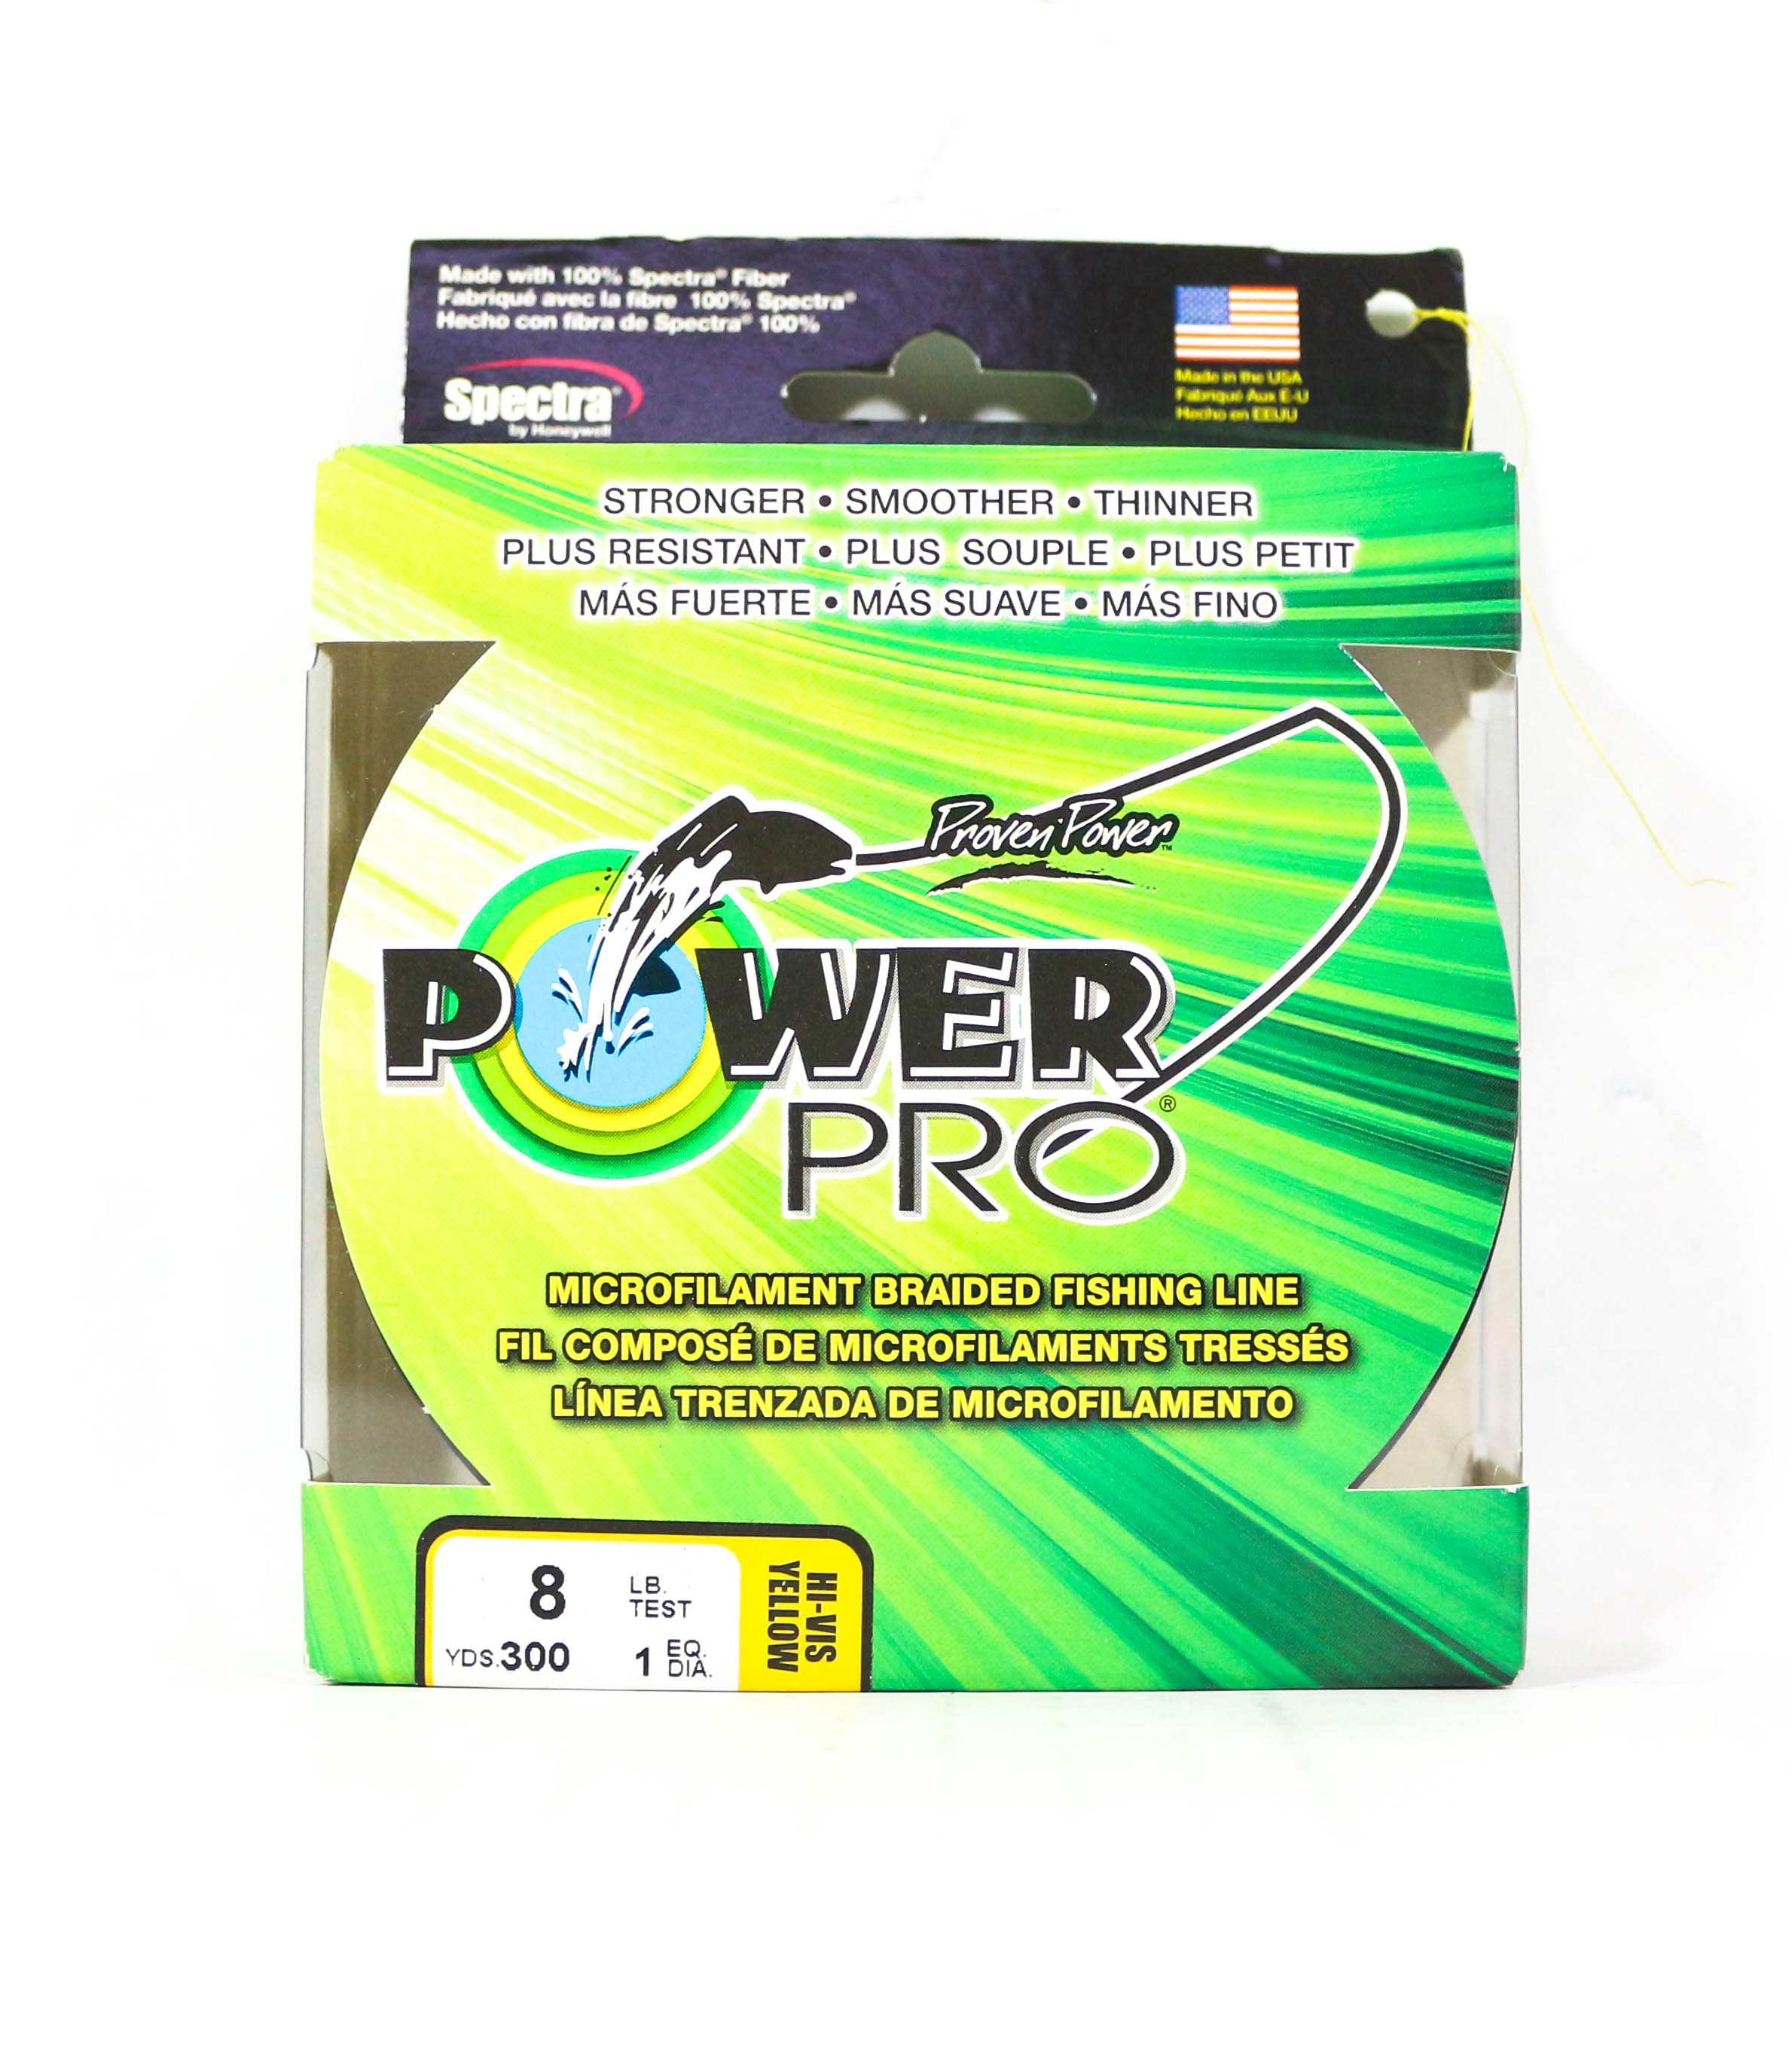 Power Pro Braided Spectra Line 8lb by 300yds Yellow (4925)